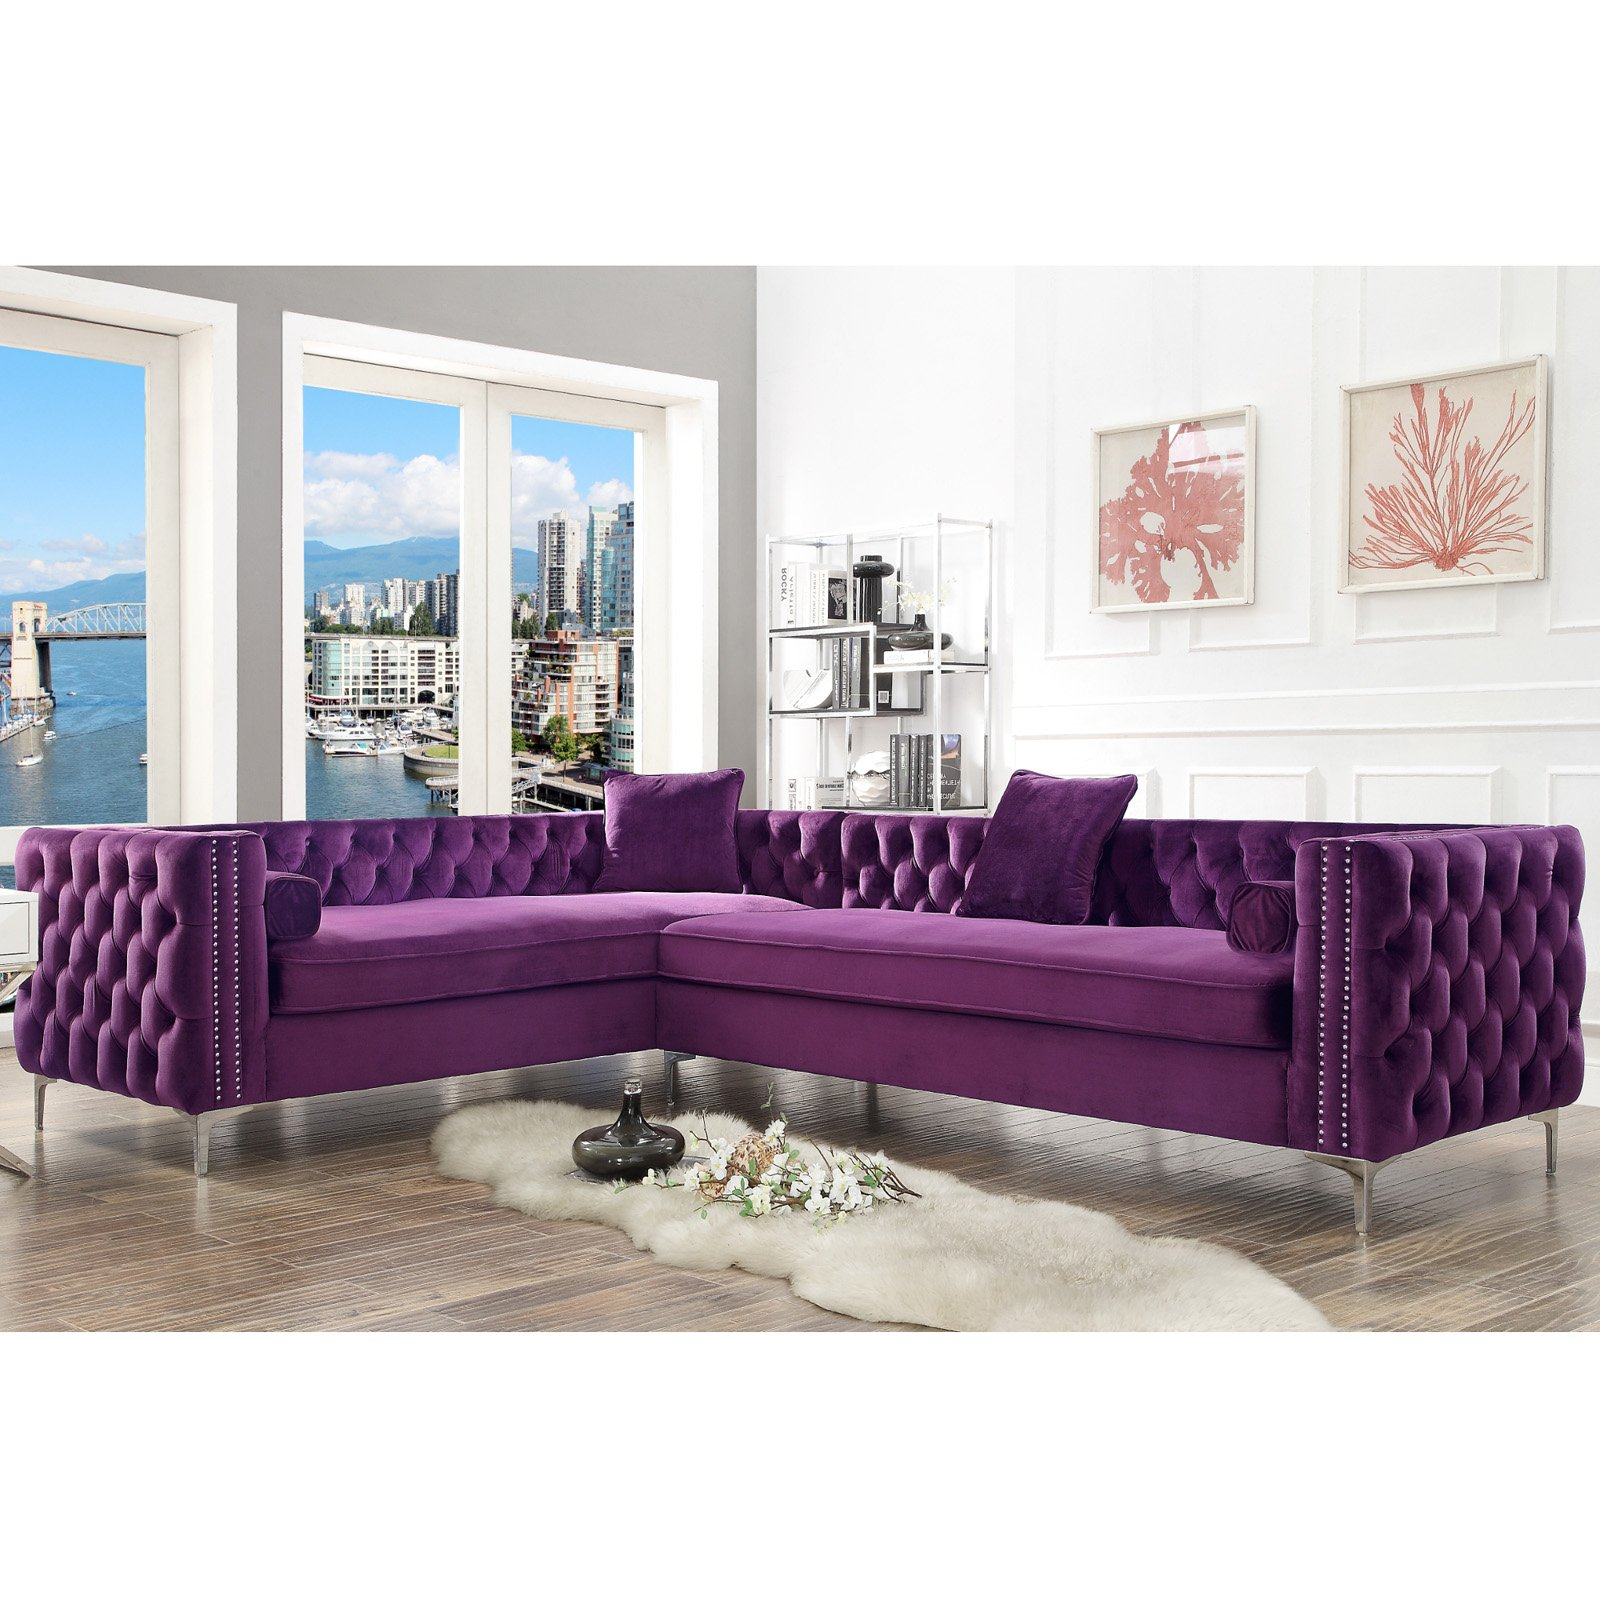 Cool Inspired Home Richard Corner Sectional Sofa Purple Pdpeps Interior Chair Design Pdpepsorg